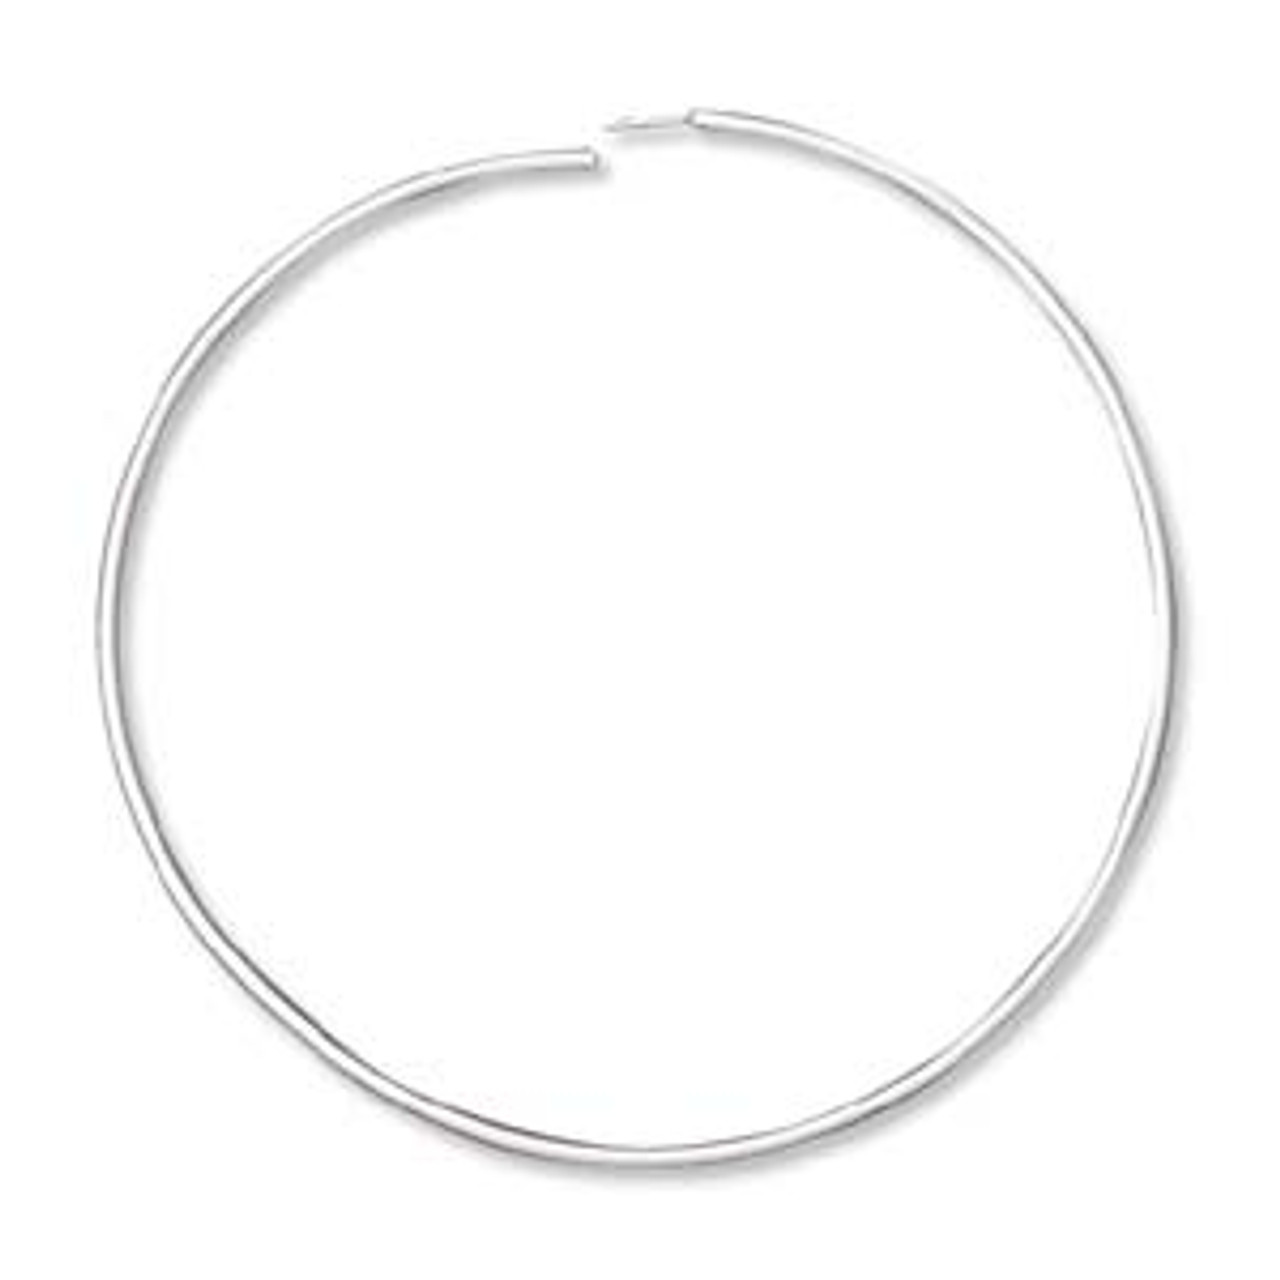 "1.5"" Silver Plated Endless Hoops (3 Pairs)"